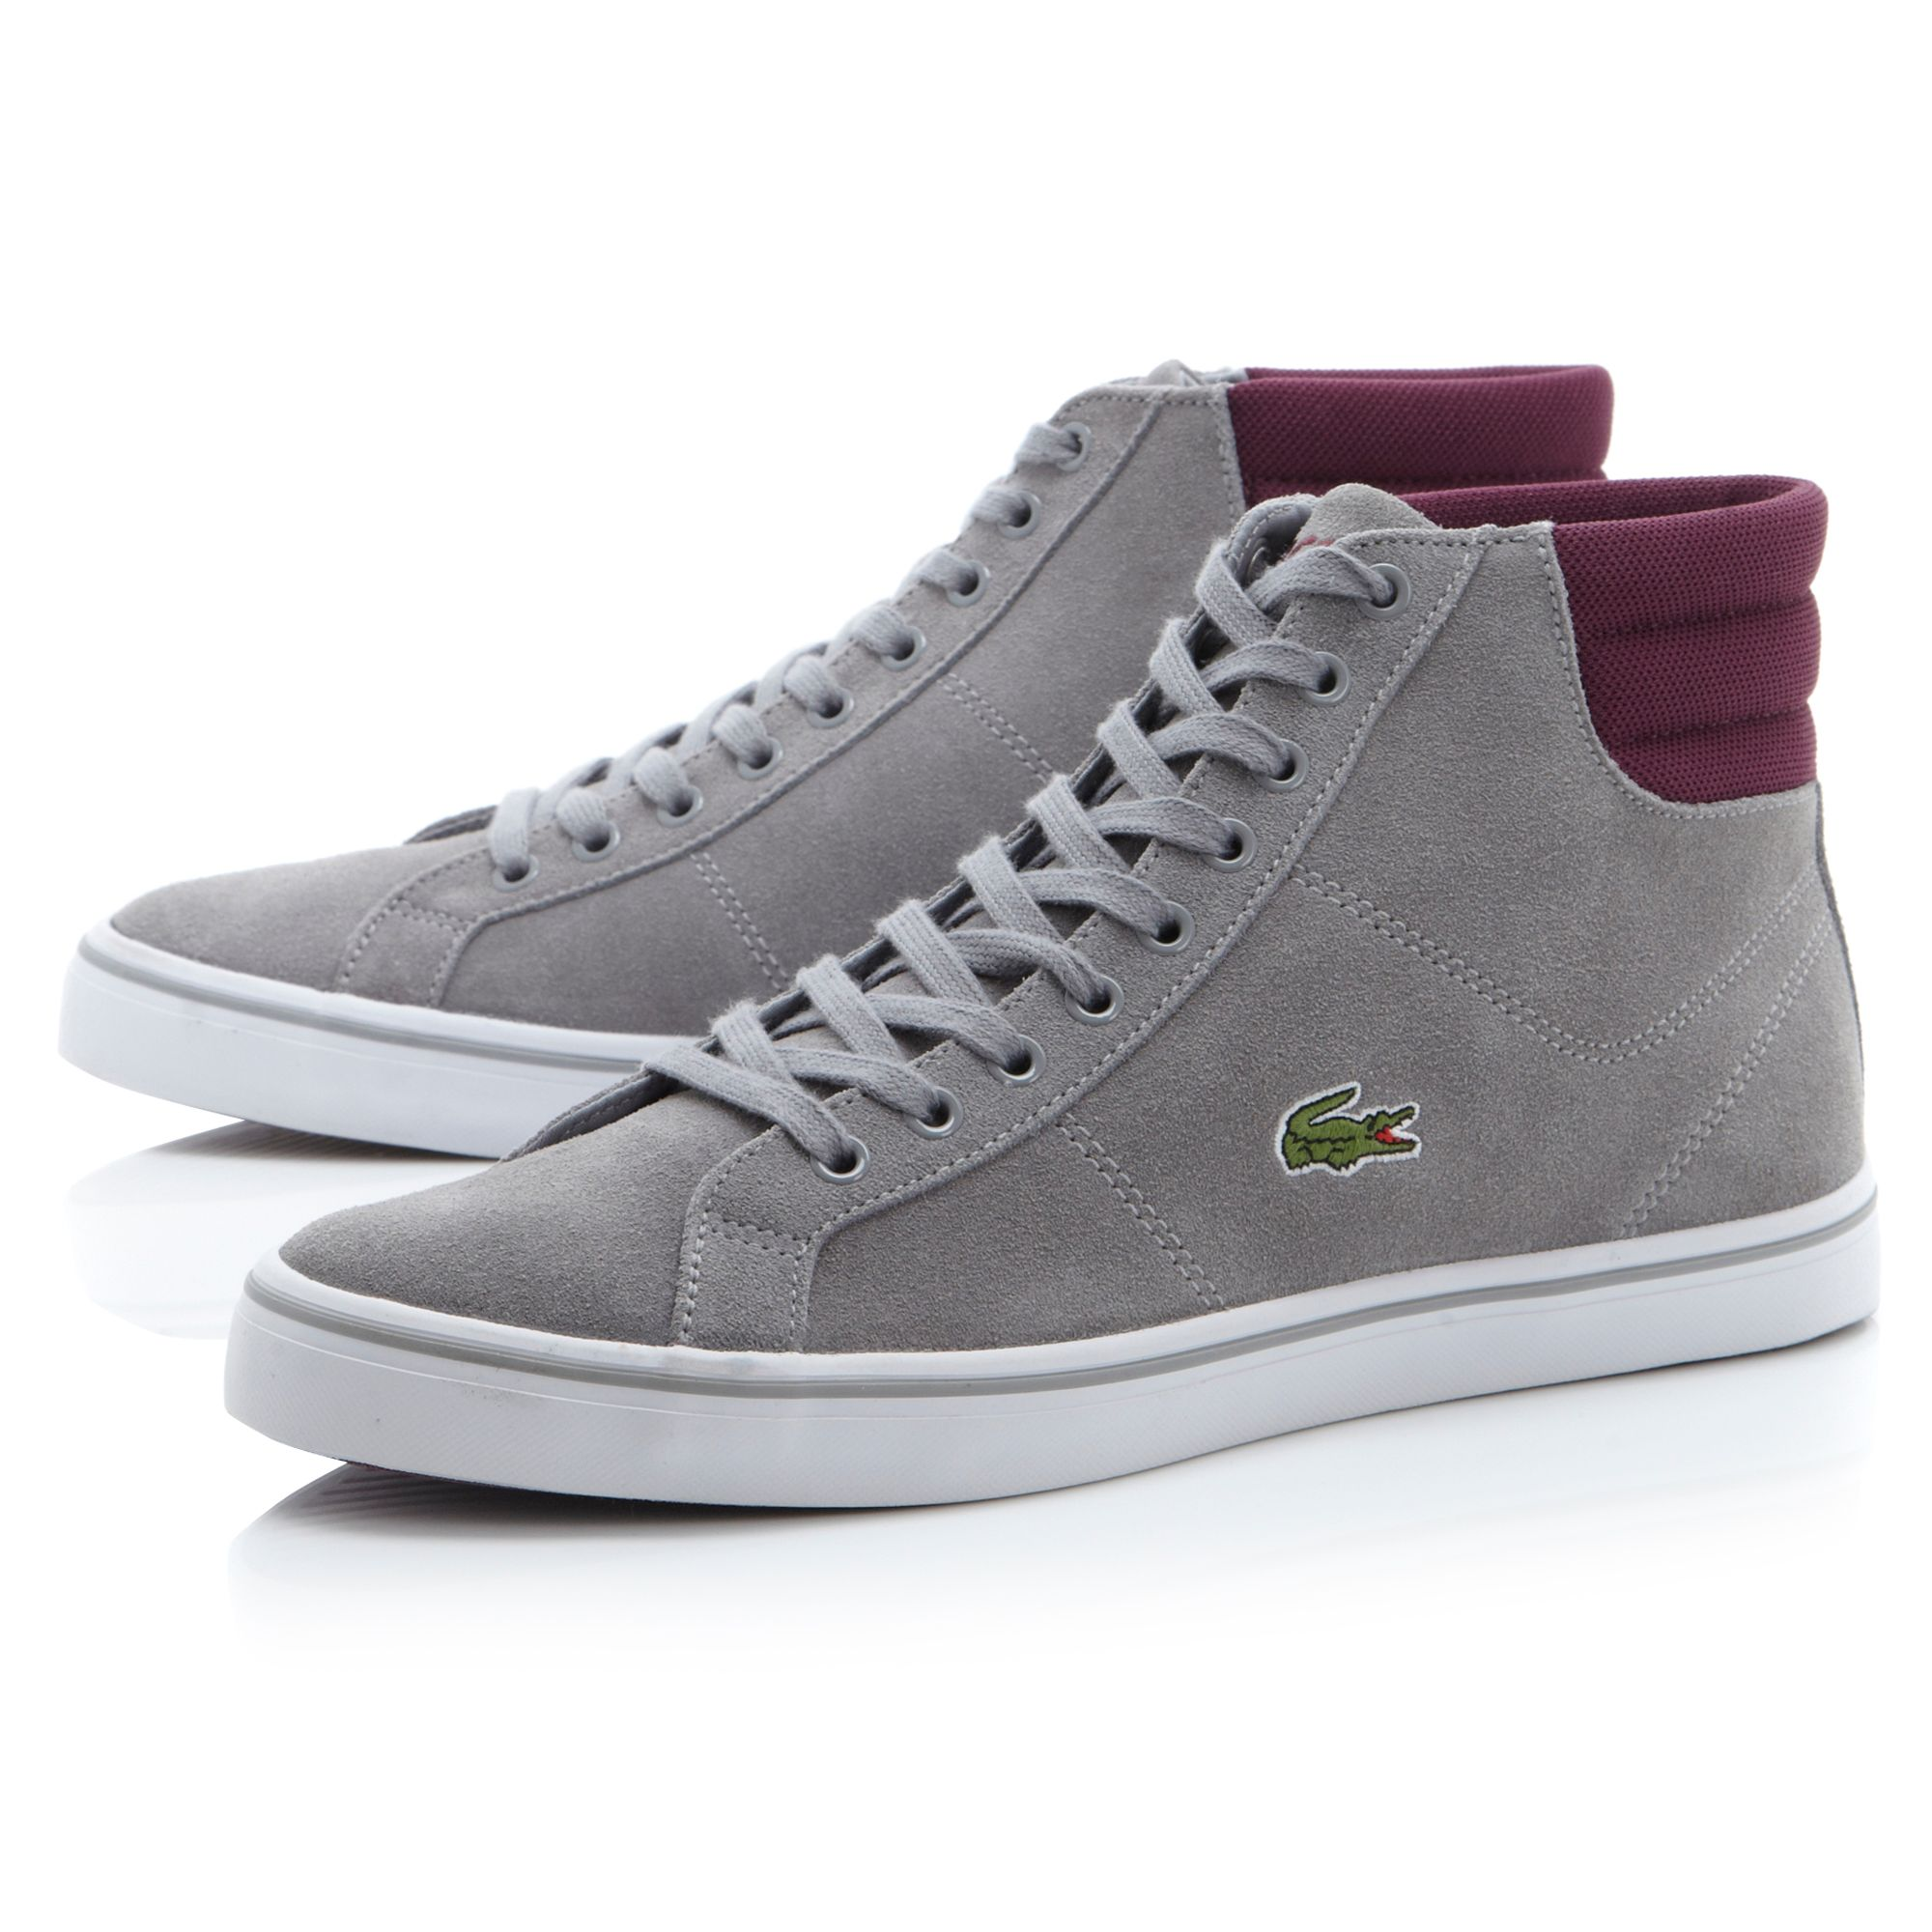 lacoste marcel suede hi top sneaker trainers in gray for